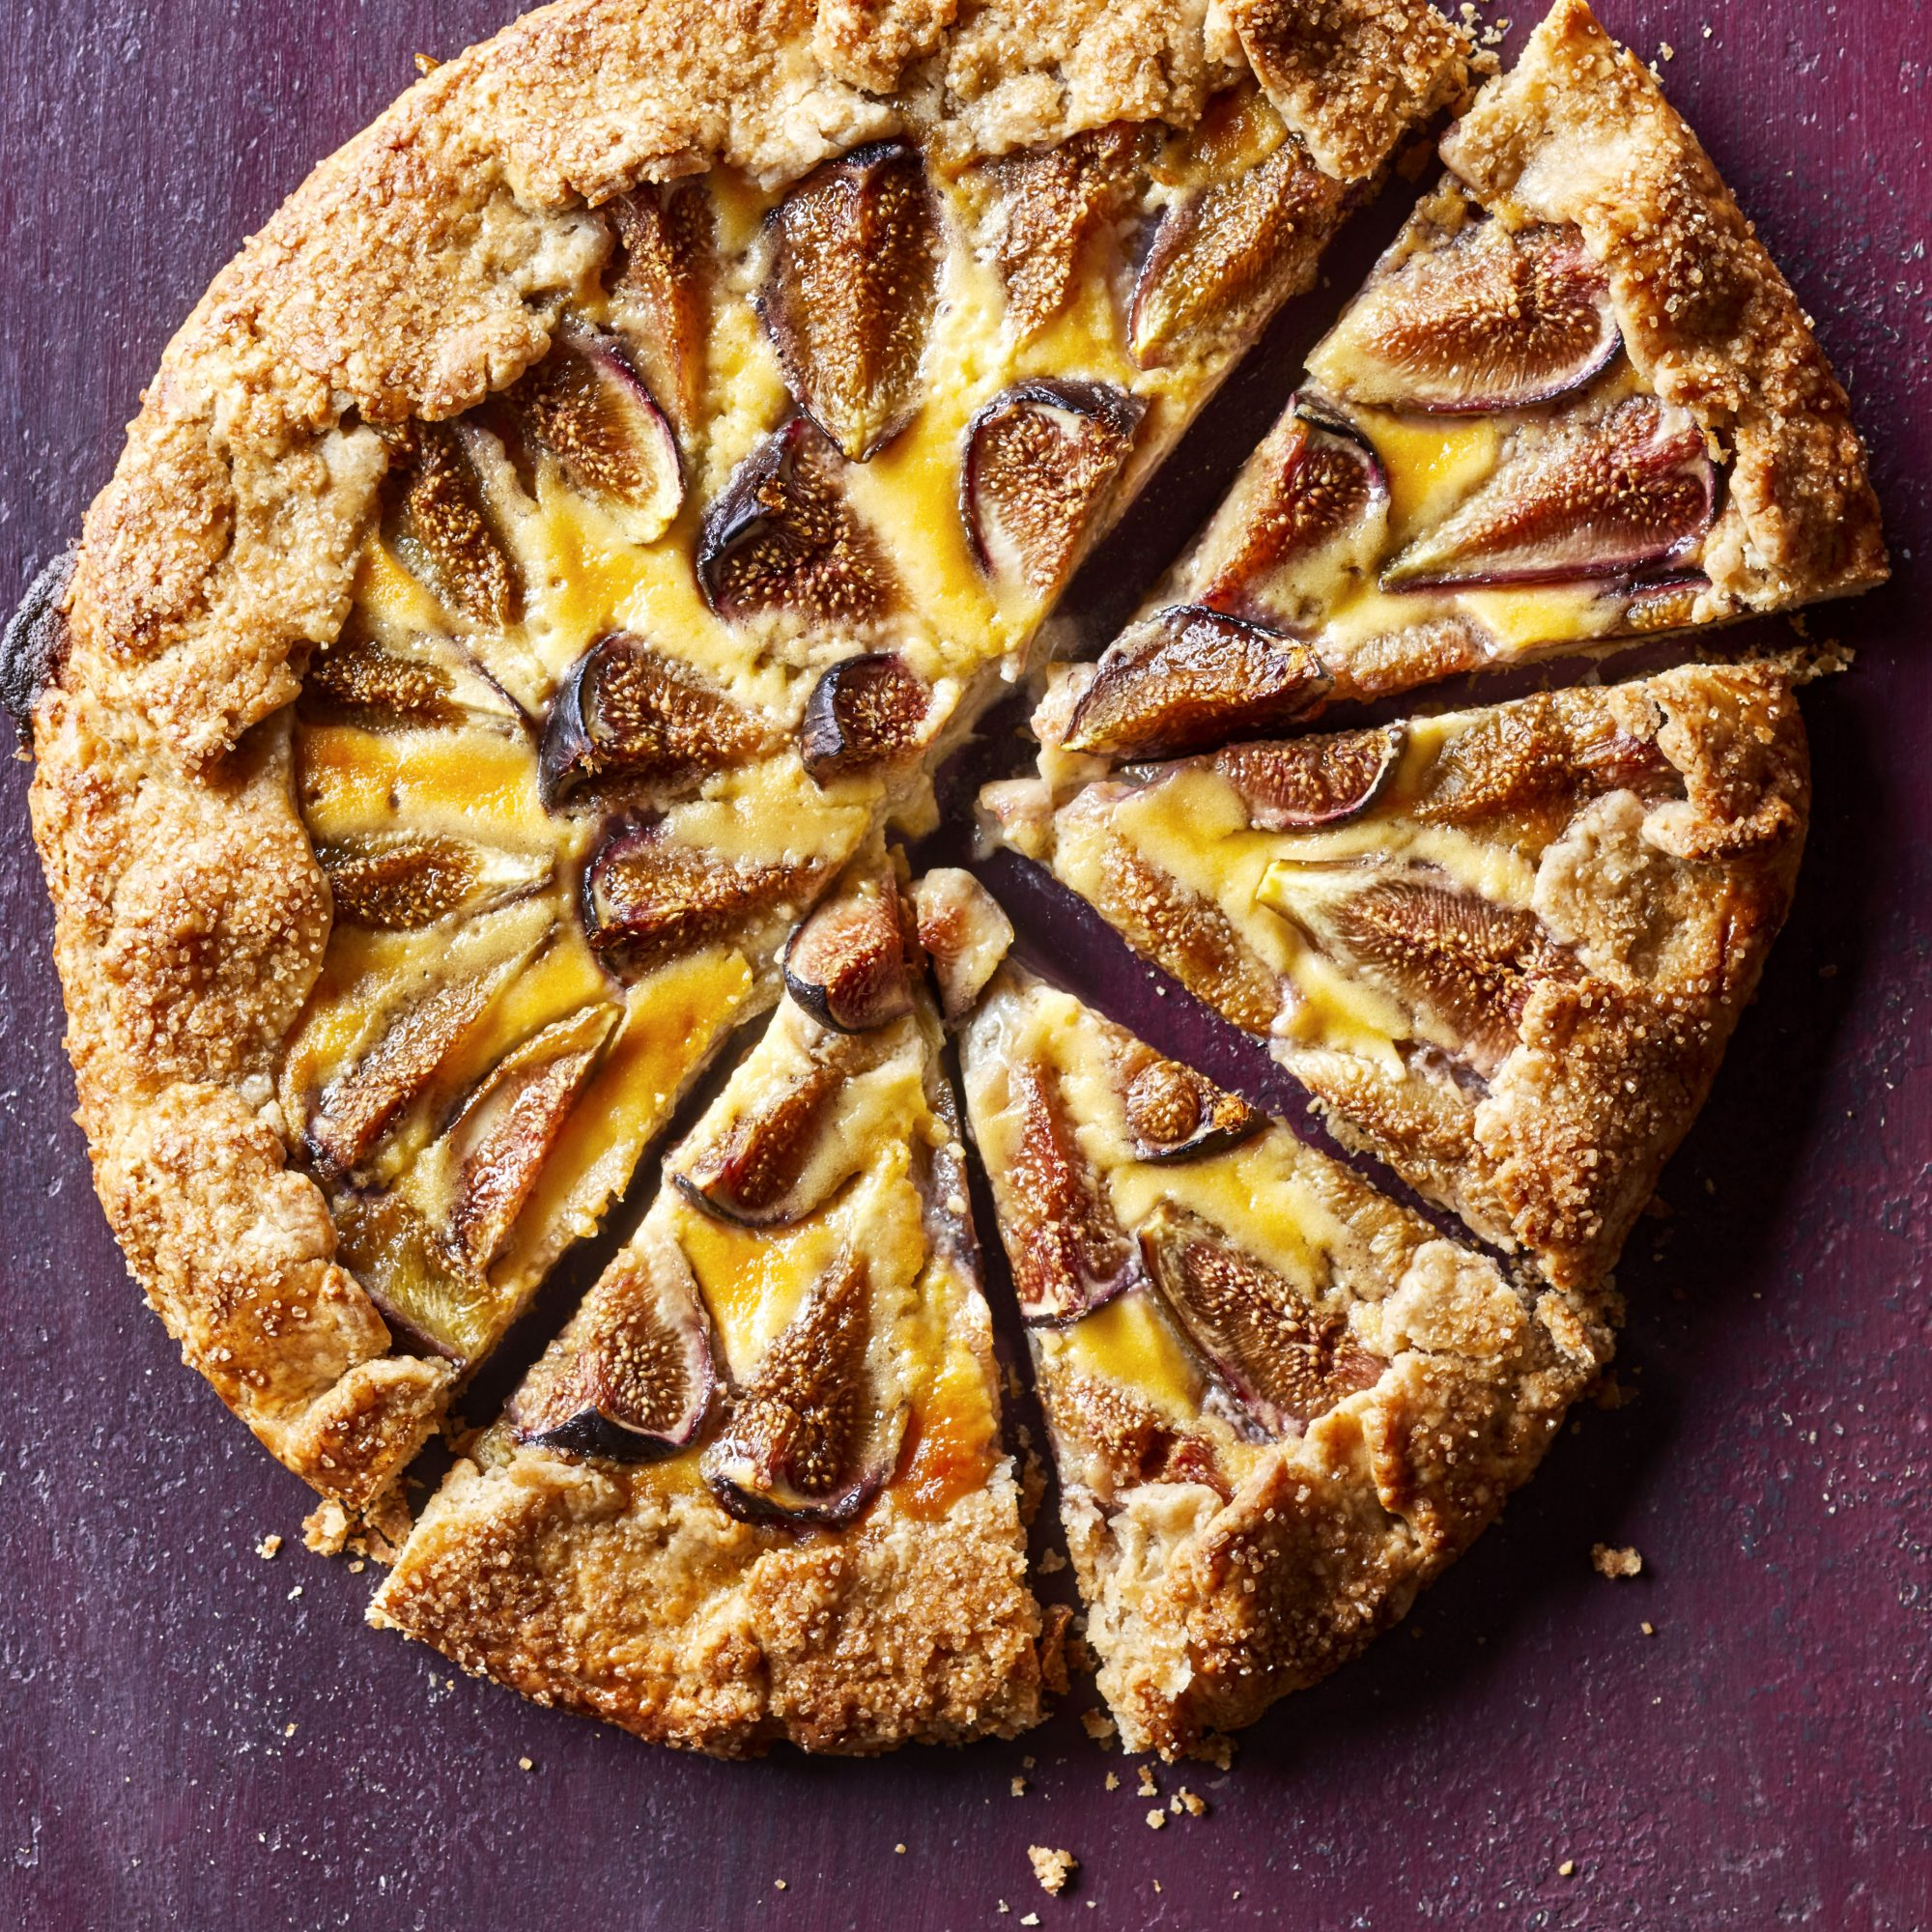 open-face tart baked with figs and honey